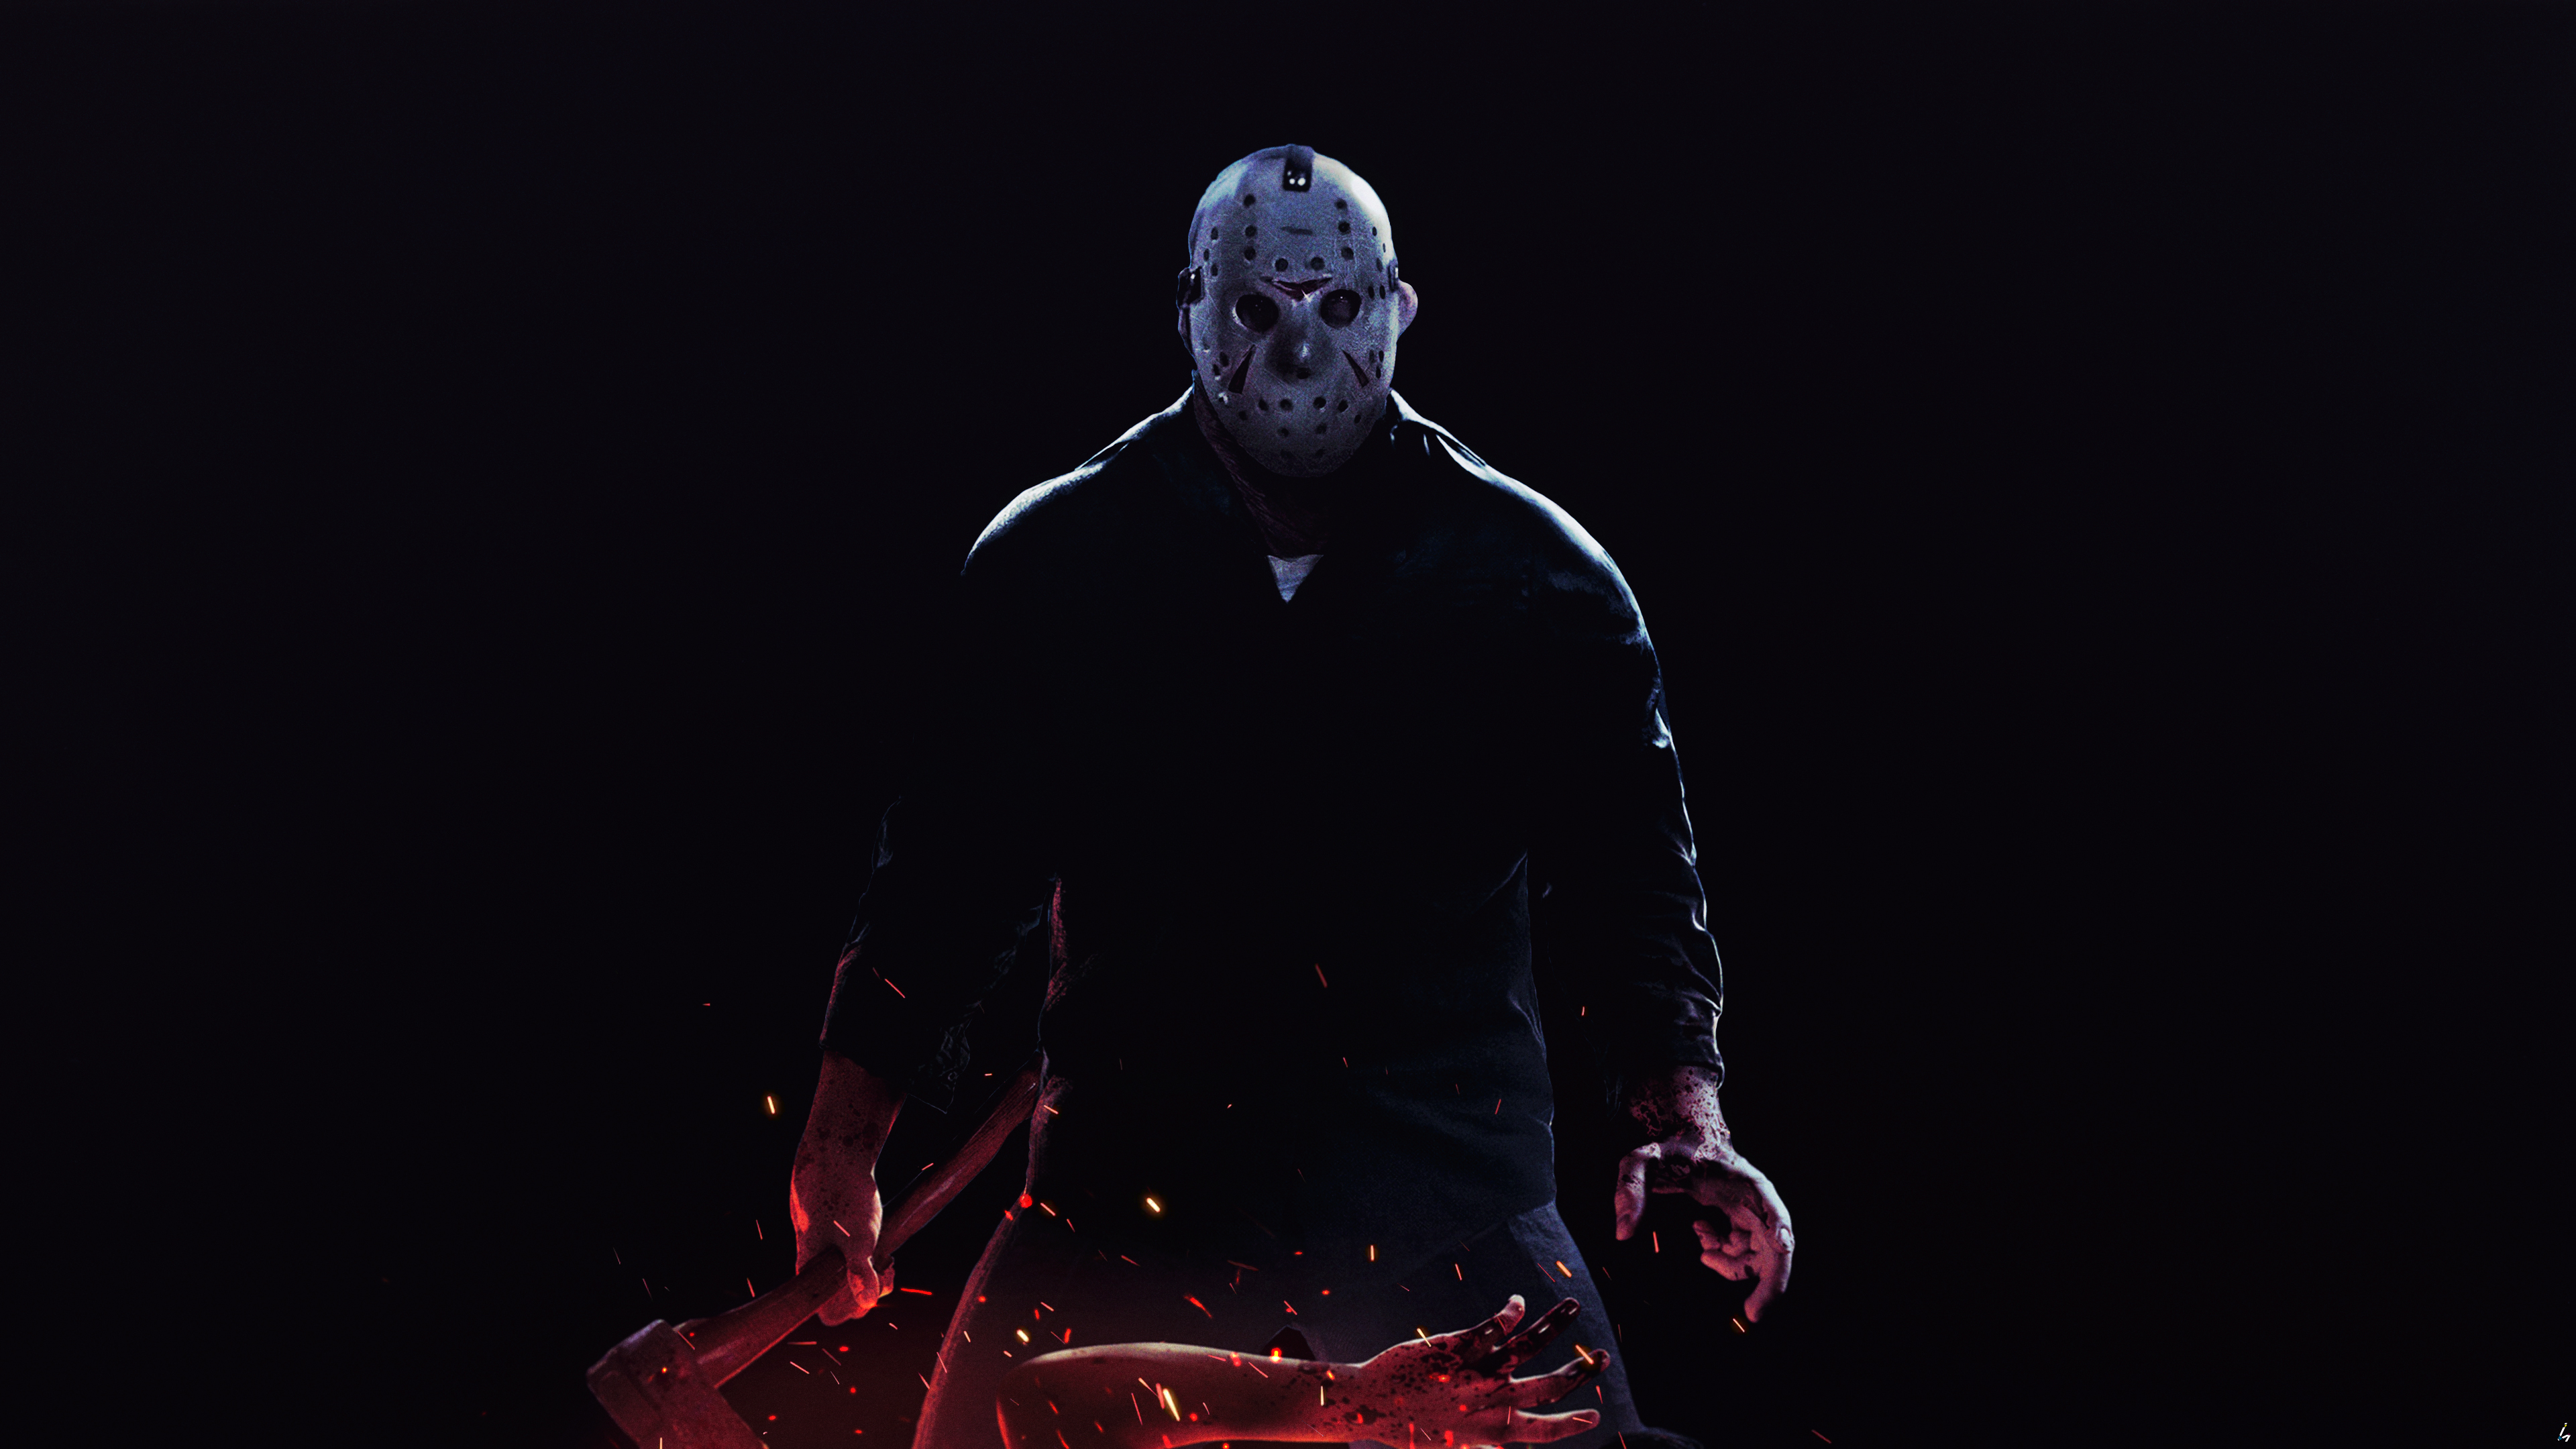 General 3840x2160 Friday the 13th friday the 13th (game) Friday the 13th the game horror fan art digital art Photoshop Video Game Maniacs video games